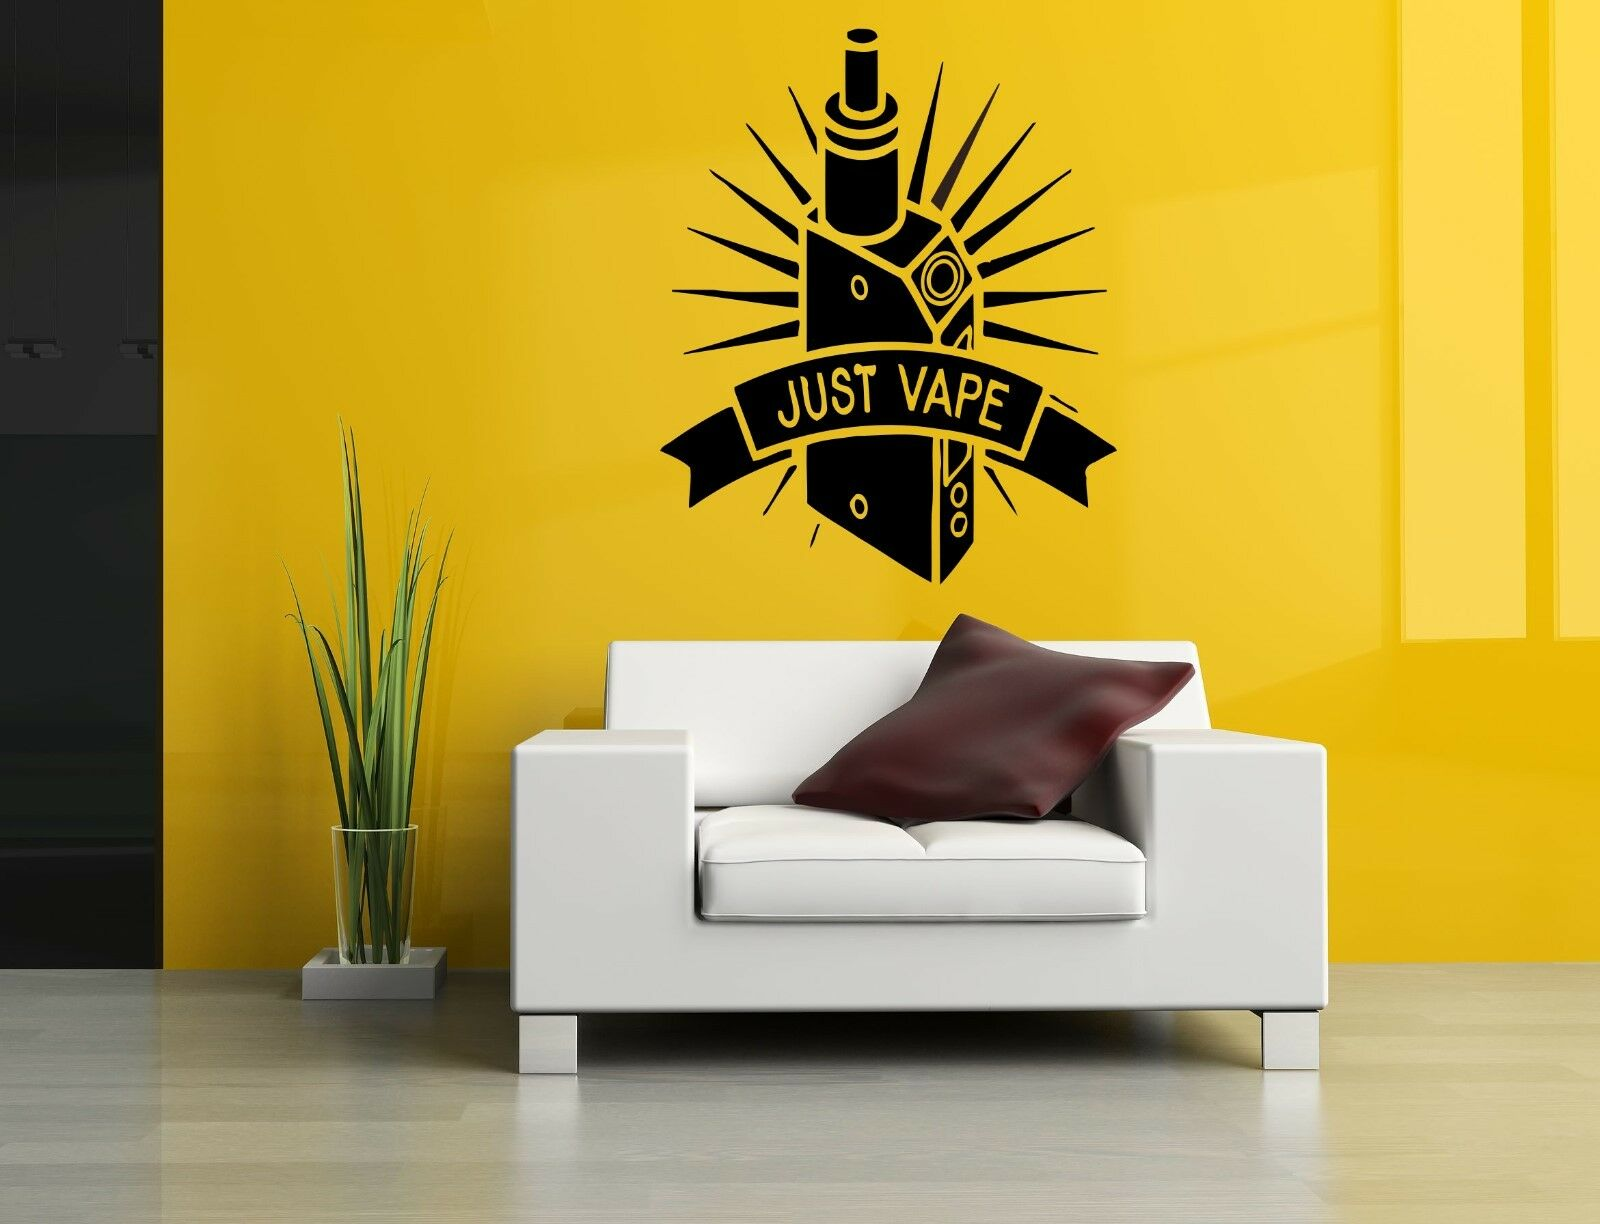 WALL DECOR ART Vinyl Sticker Mural Decal Just Vape Vaporizer Set ...